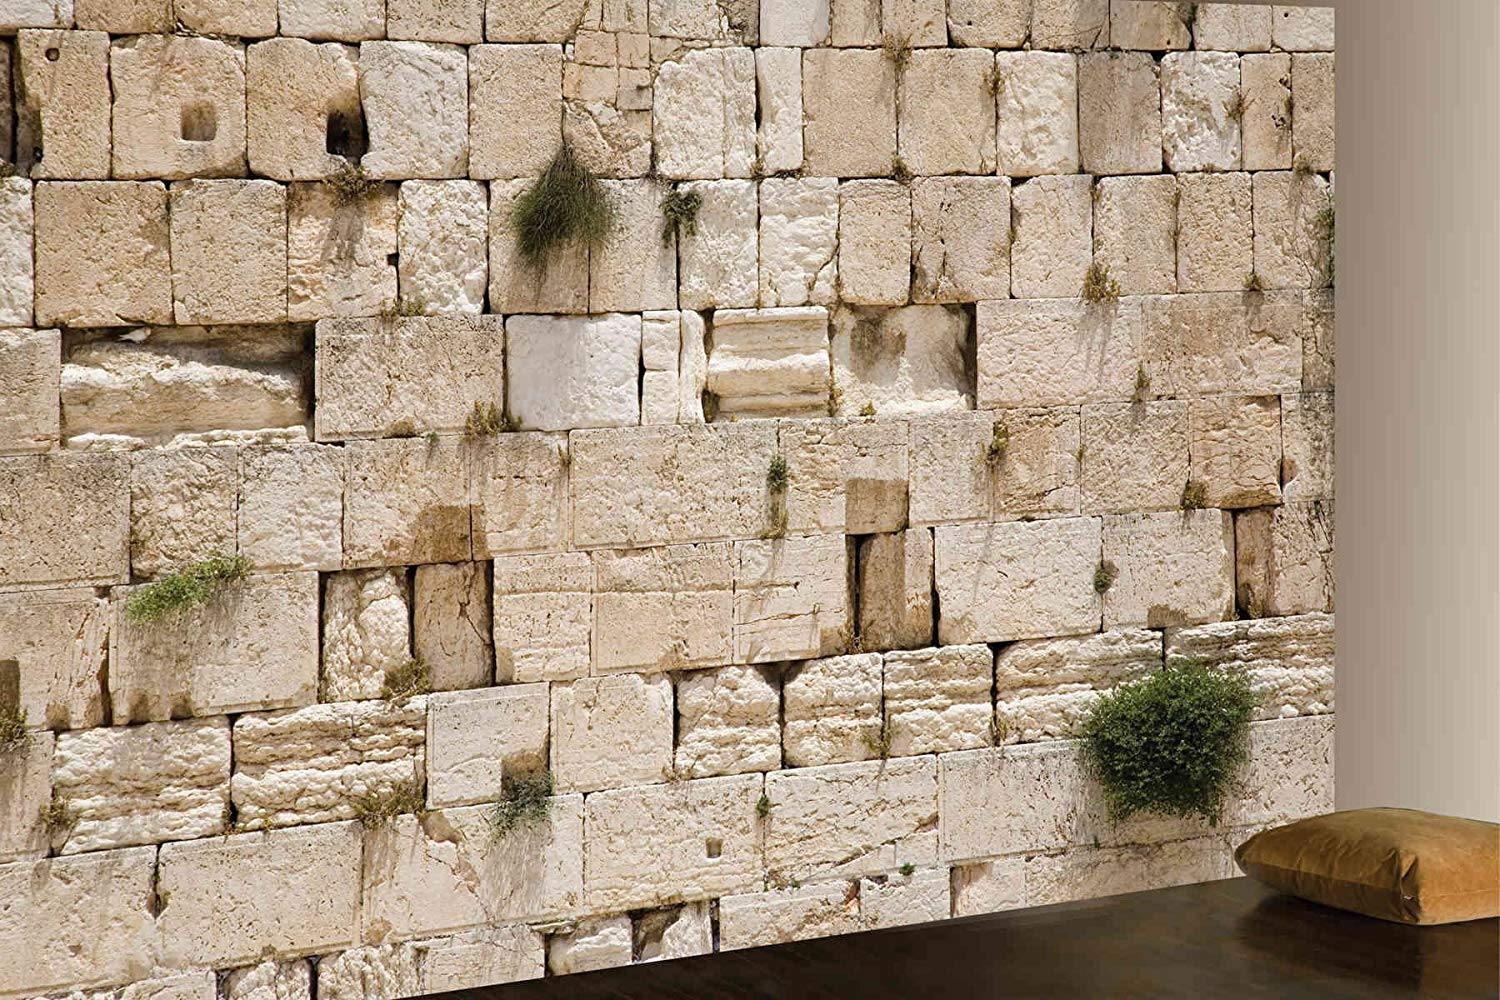 1500x1000 12-Feet wide by 8-Feet high. Prepasted wallpaper high quality mural from a  photo of the: Wailing Wall, Jerusalem. Easy to hang remove and reuse (hang  ...